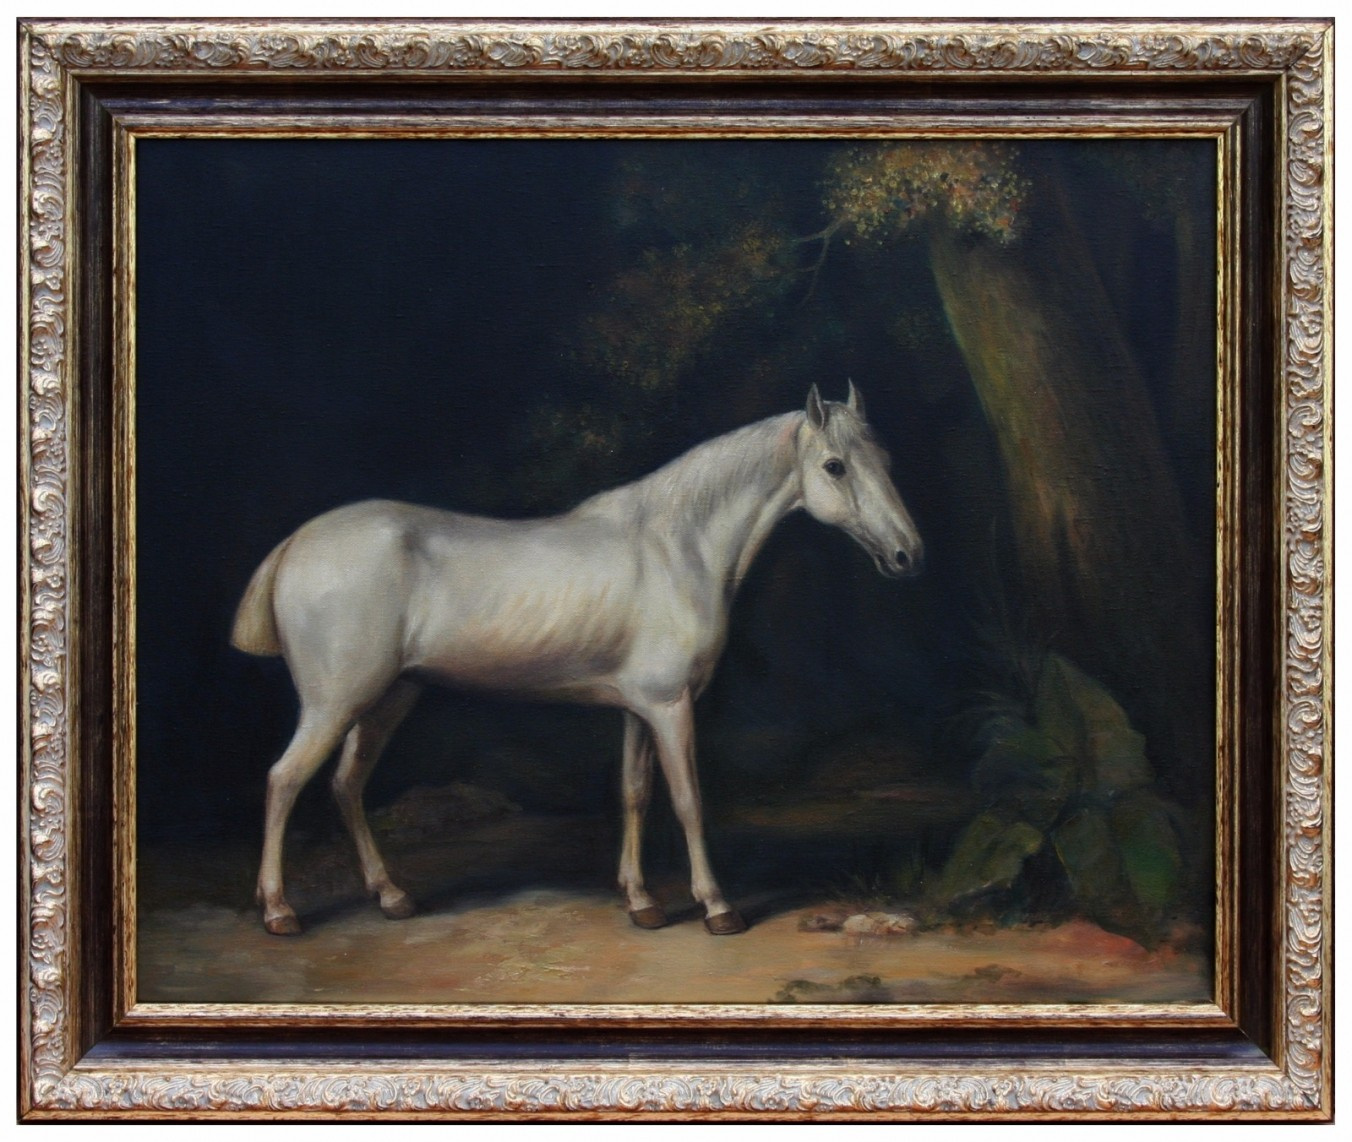 Oil Painting after 'Horse in the Shade of a Wood' by George Stubbs